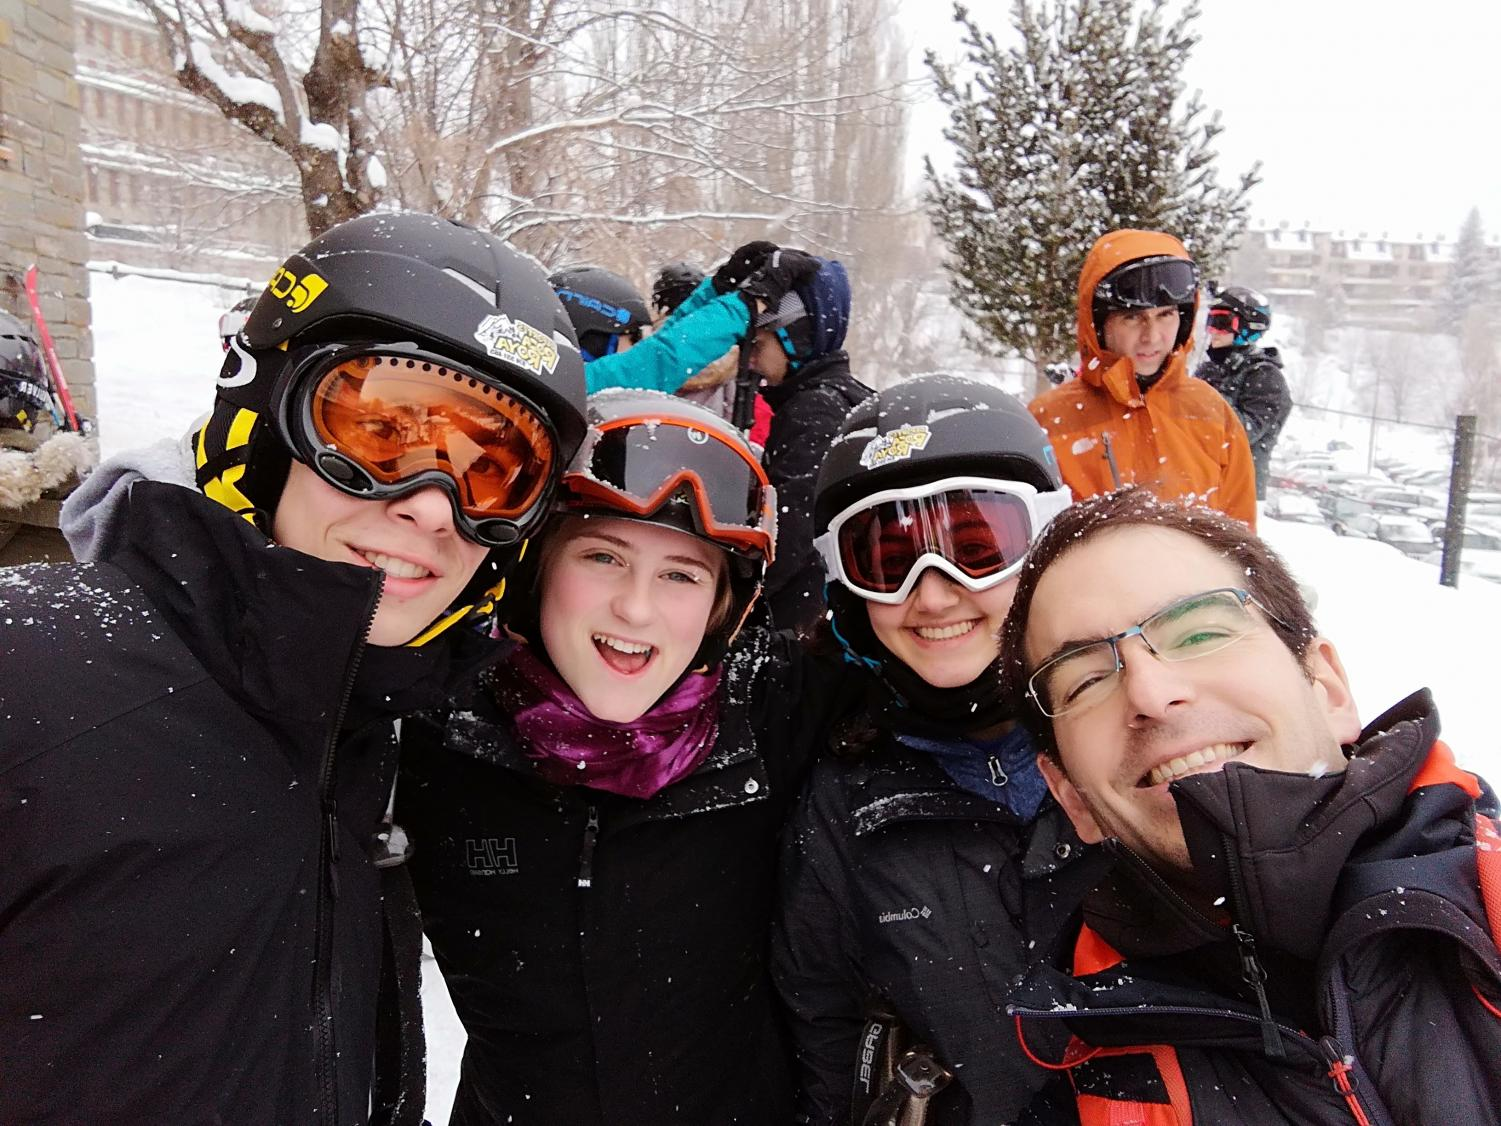 James Leupold with his science teacher and friends on an SYA school ski trip. Photo Courtesy of James Leupold.